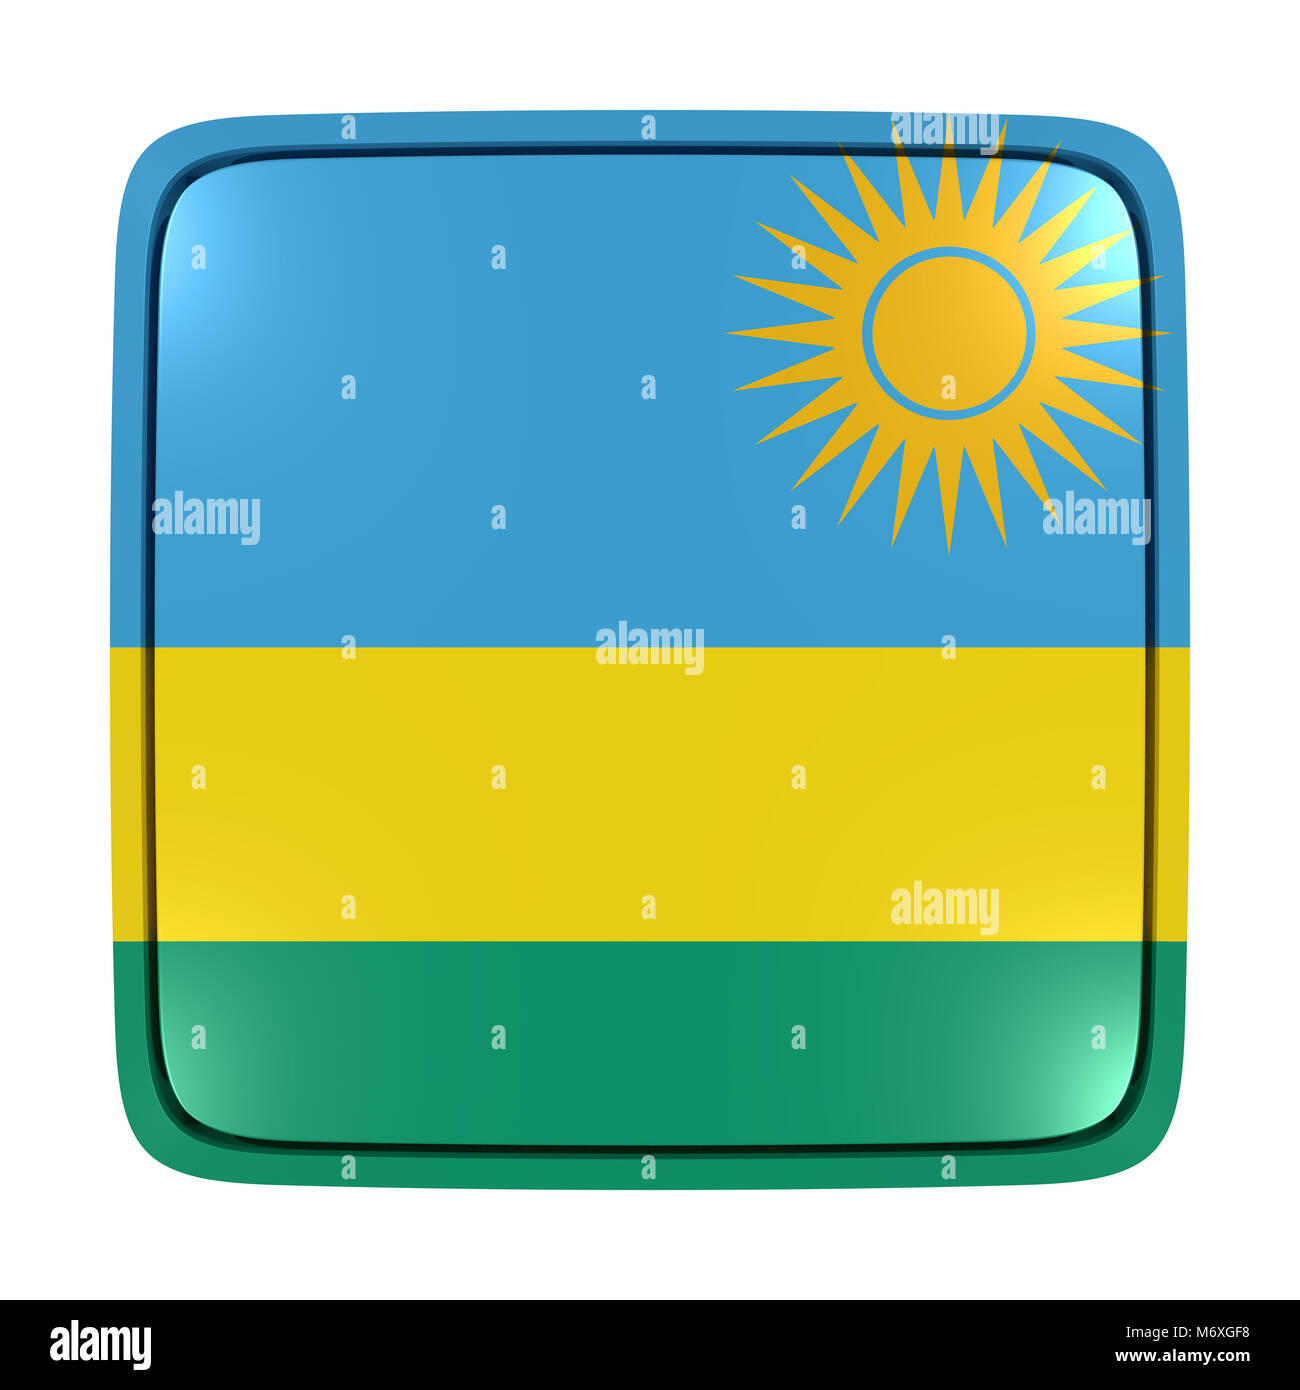 3d rendering of a Republic of Rwanda flag icon. Isolated on white background. - Stock Image